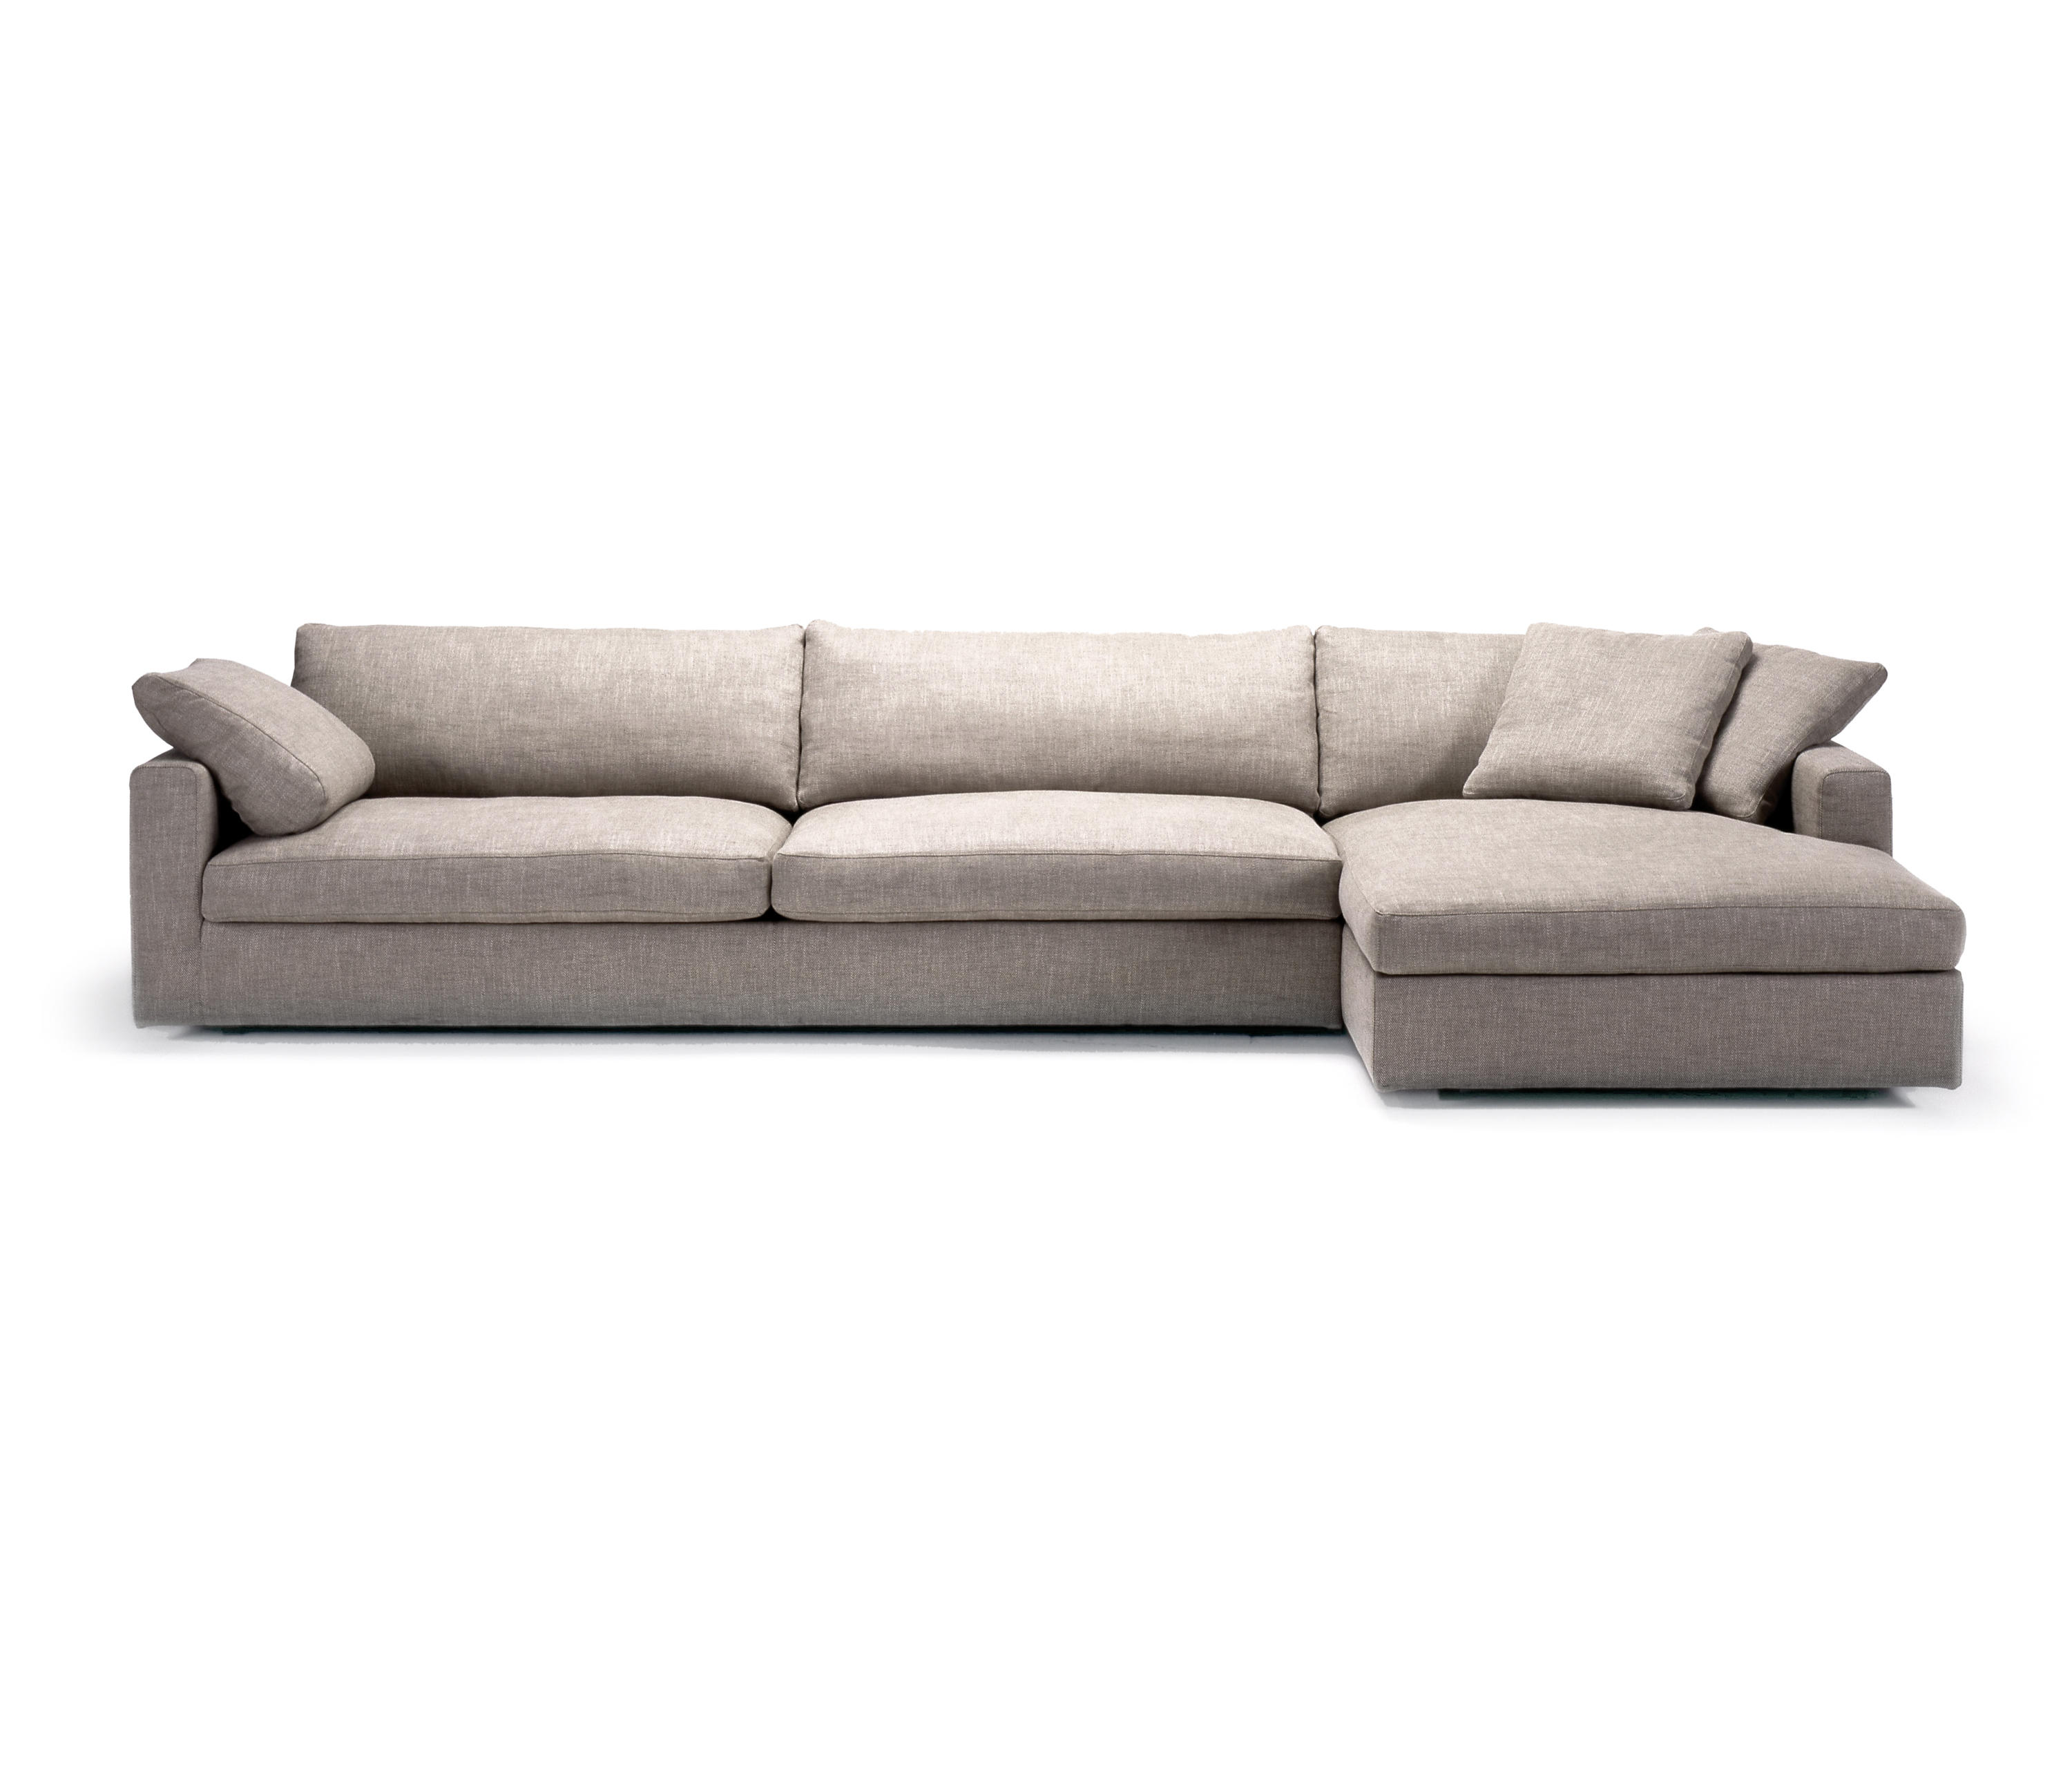 Fabio sofa chaise longue modular sofa systems from for Sofa chaise longue